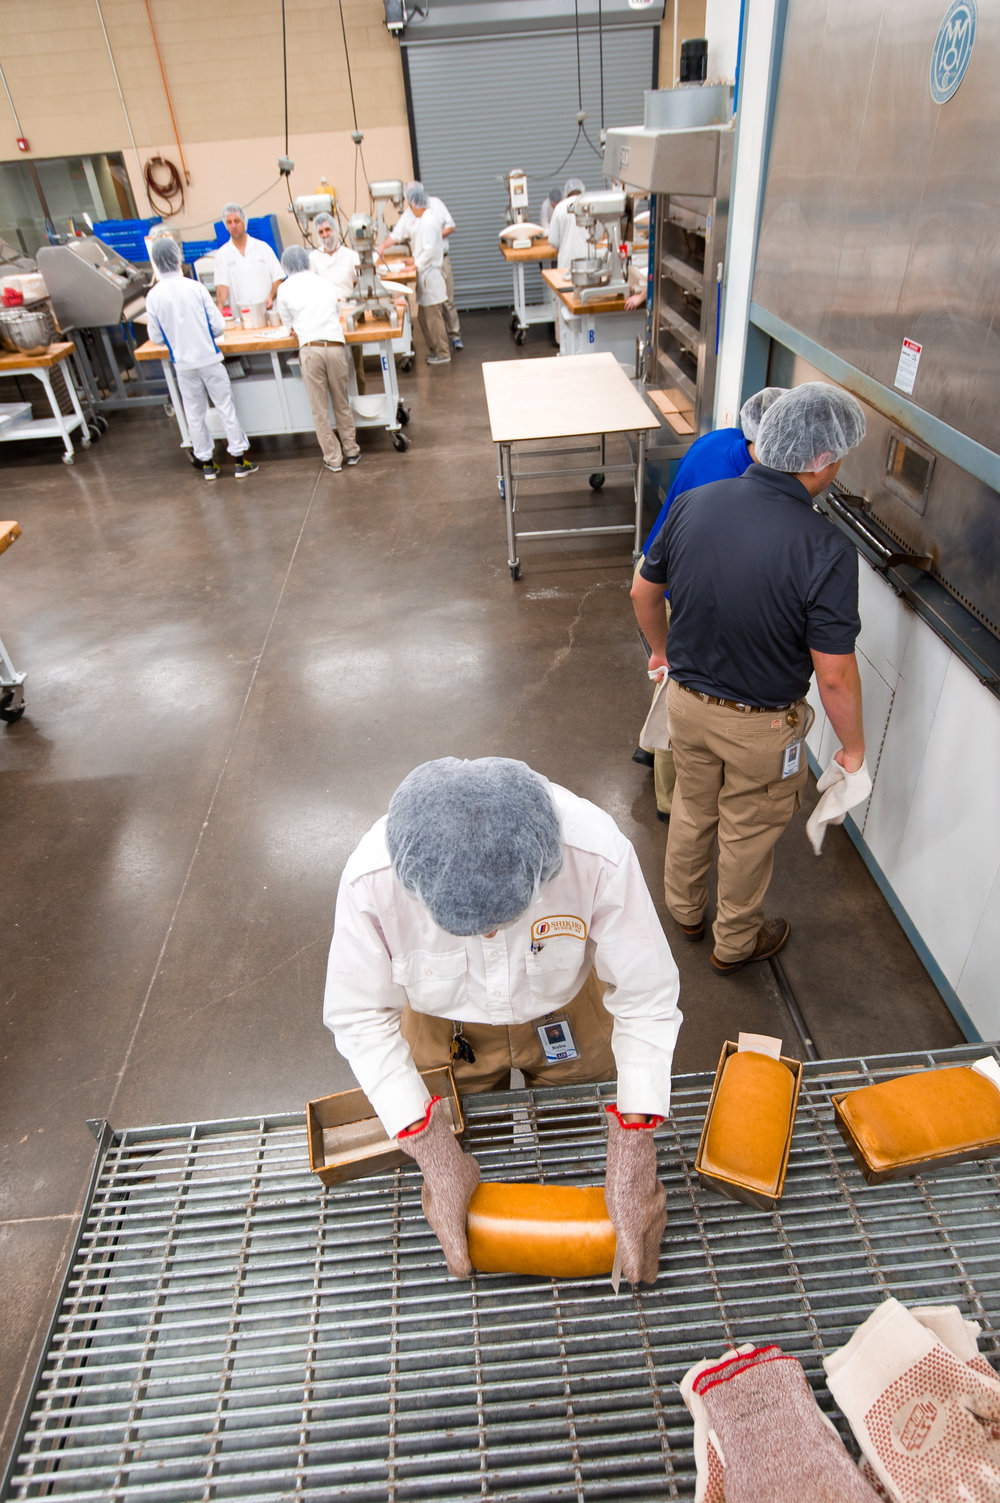 Once the product is properly cooled, students learn the process of slicing and bagging.